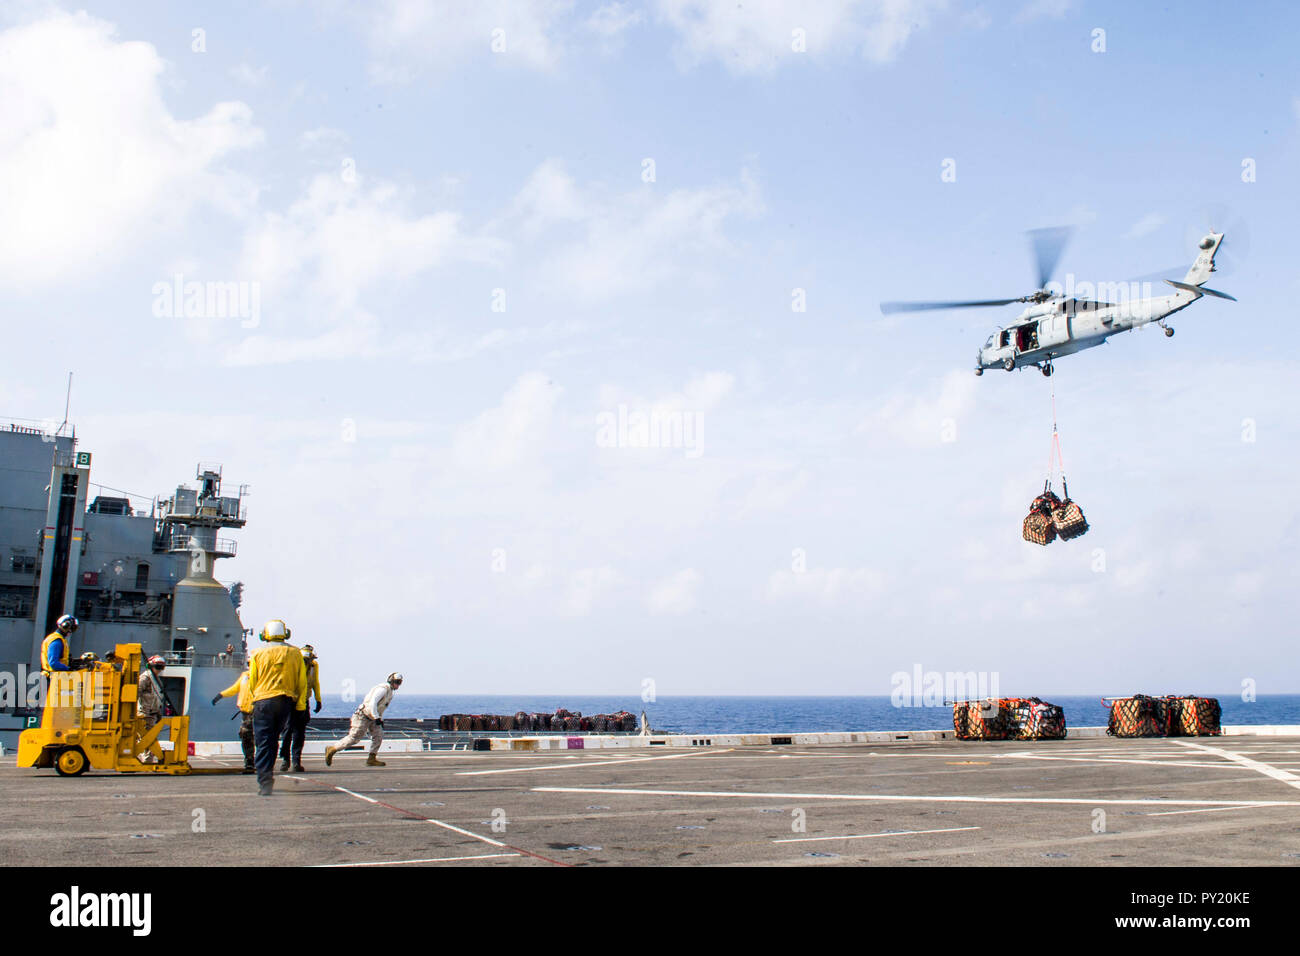 181021-N-PH222-1649 MEDITERRANEAN SEA (Oct. 21, 2018) Sailors assigned to San Antonio-class amphibious transport dock ship USS Anchorage (LPD 23) and Marines assigned to the 13th Marine Expeditionary Unit (MEU) participate in a vertical replenishment with dry cargo and ammunition ship USNS Medgar Evers (T-AKE-13) in the Mediterranean Sea, Oct. 21, 2018. Anchorage and embarked 13th MEU are deployed to the U.S. 6th Fleet area of operations as a crisis response force in support of regional partners as well as to promote U.S. national security interests in Europe and Africa. (U.S. Navy photo by Ma - Stock Image